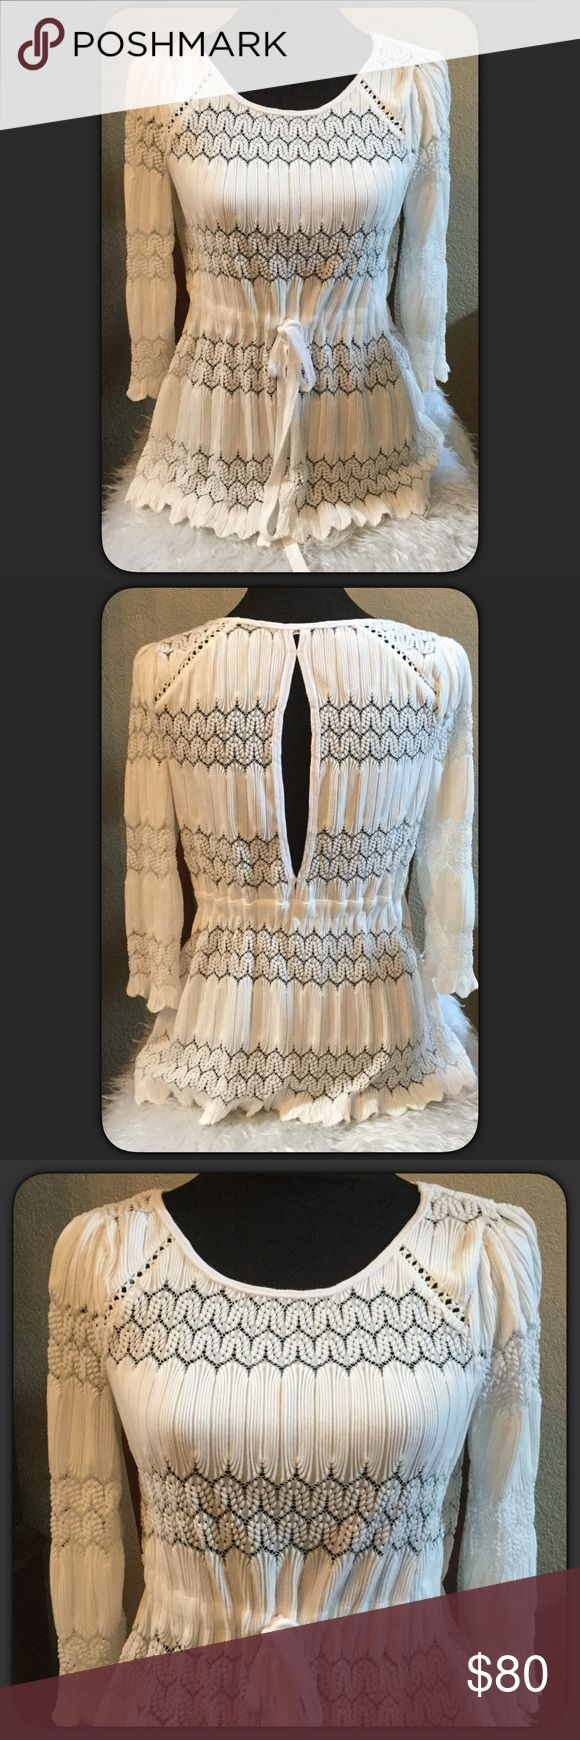 """🆕🍒Price Drop🍒Free People White Top Beautiful Free a people white Knit crochet style top with Key hole back. Had drawstring at waist area to tighten or leave loose. I ordered this online and I missed the return date. Size Small. Measures approximately 25"""" long, armpit to armpit 17"""" lying flat. Labeling as NWT I ordered thru Free People Online and it did not come with a tag. Never worn. This is new without tag. Price firm💕 Free People Tops"""